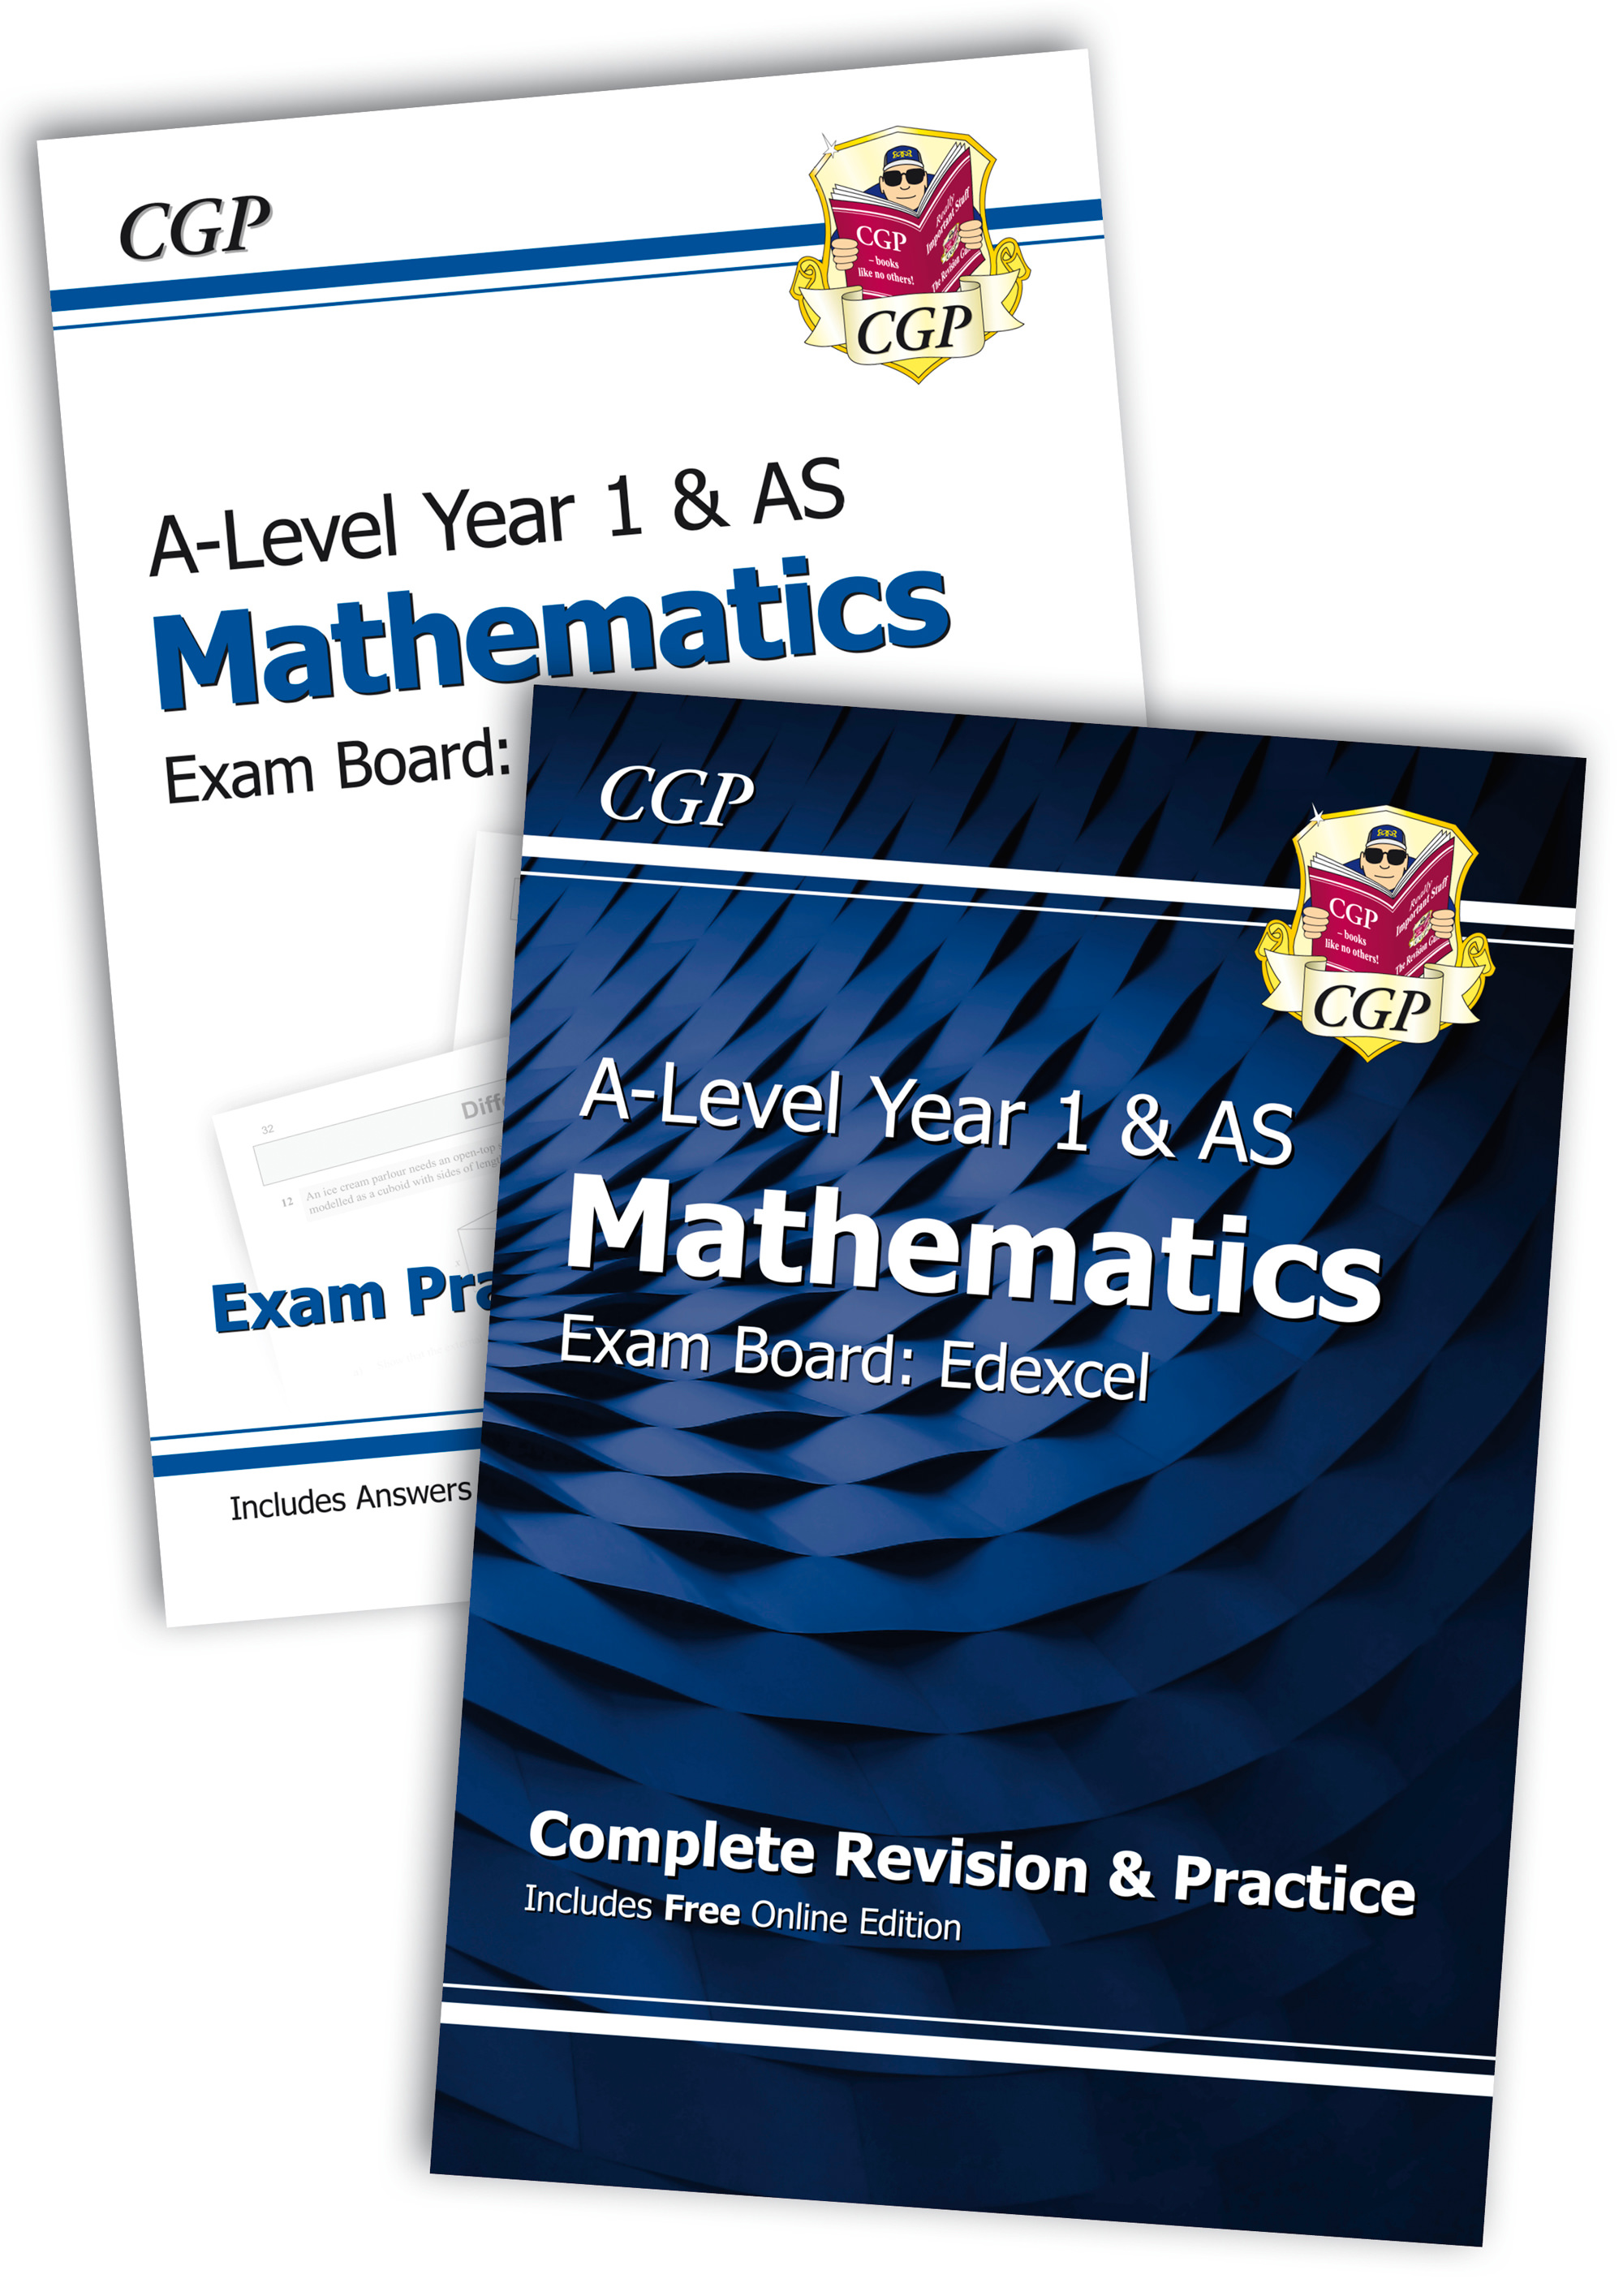 MEHB51 - New Complete Revision and Exam Practice A-Level Maths Bundle: Edexcel Year 1 & AS